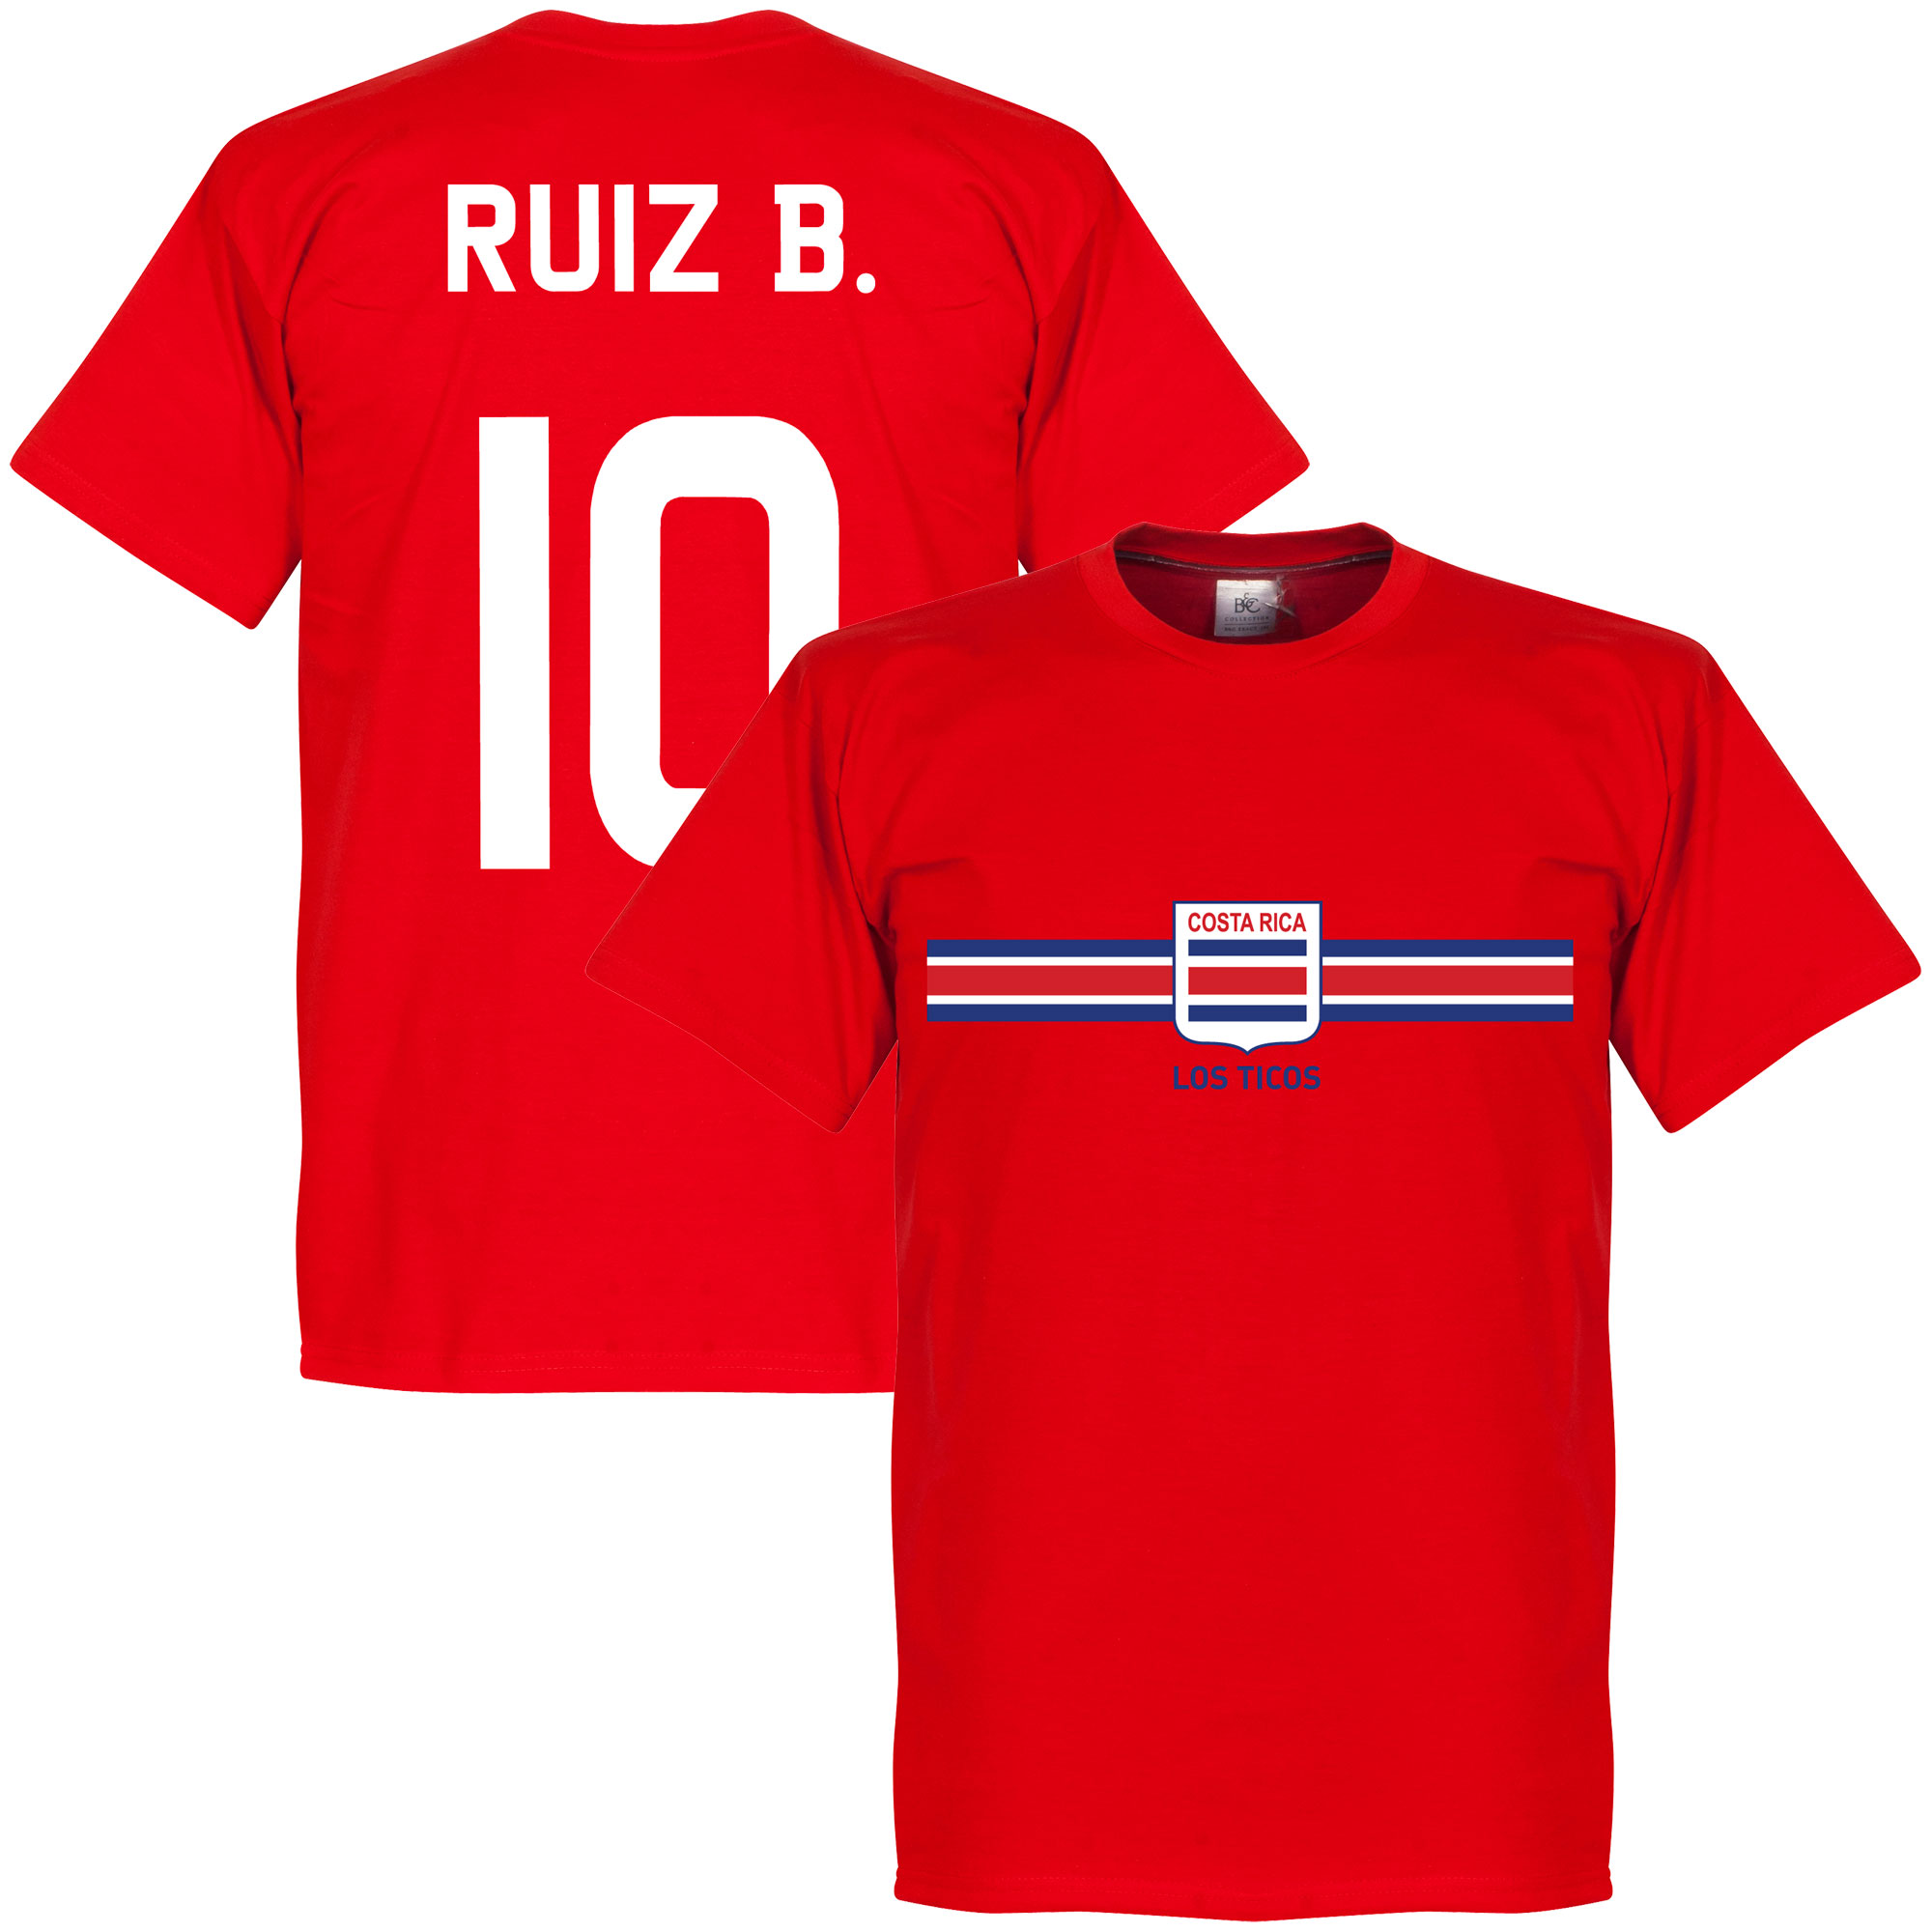 Costa Rica Ruiz B. Team Tee - Red - XS